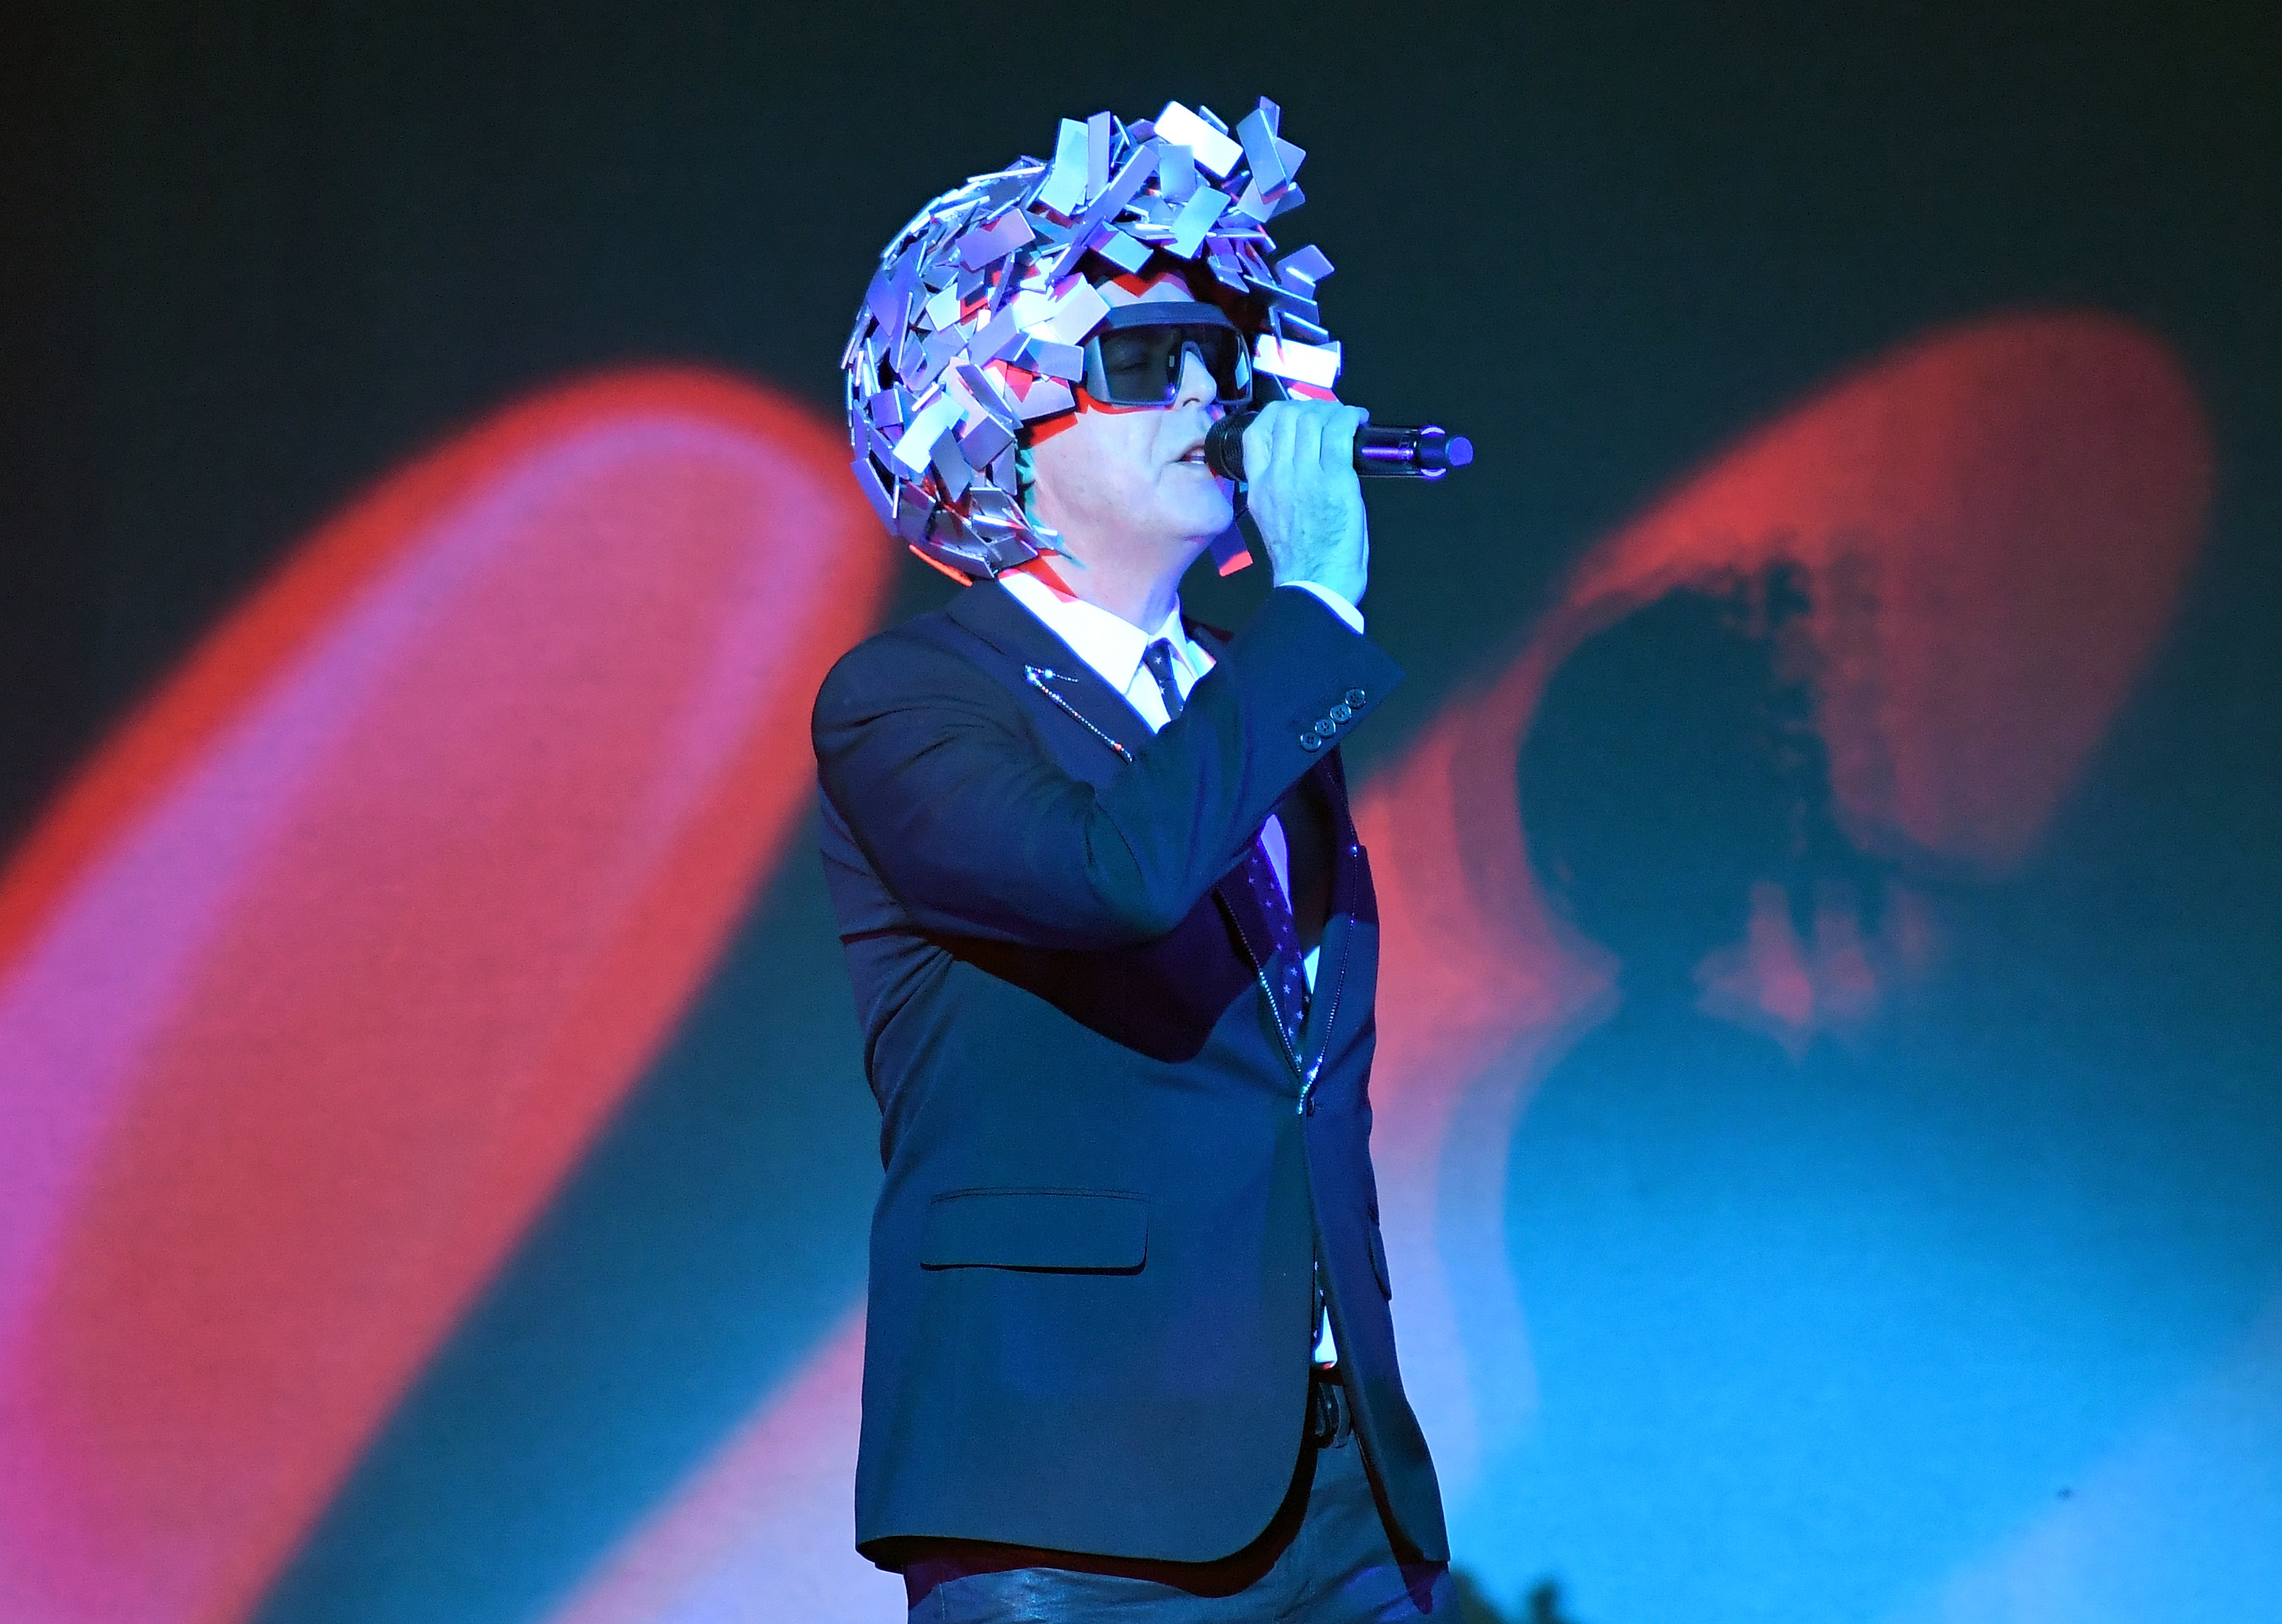 Musician Neil Tennant of Pet Shop Boys performs onstage at The Theater at Madison Square Garden on November 12, 2016 in New York City.